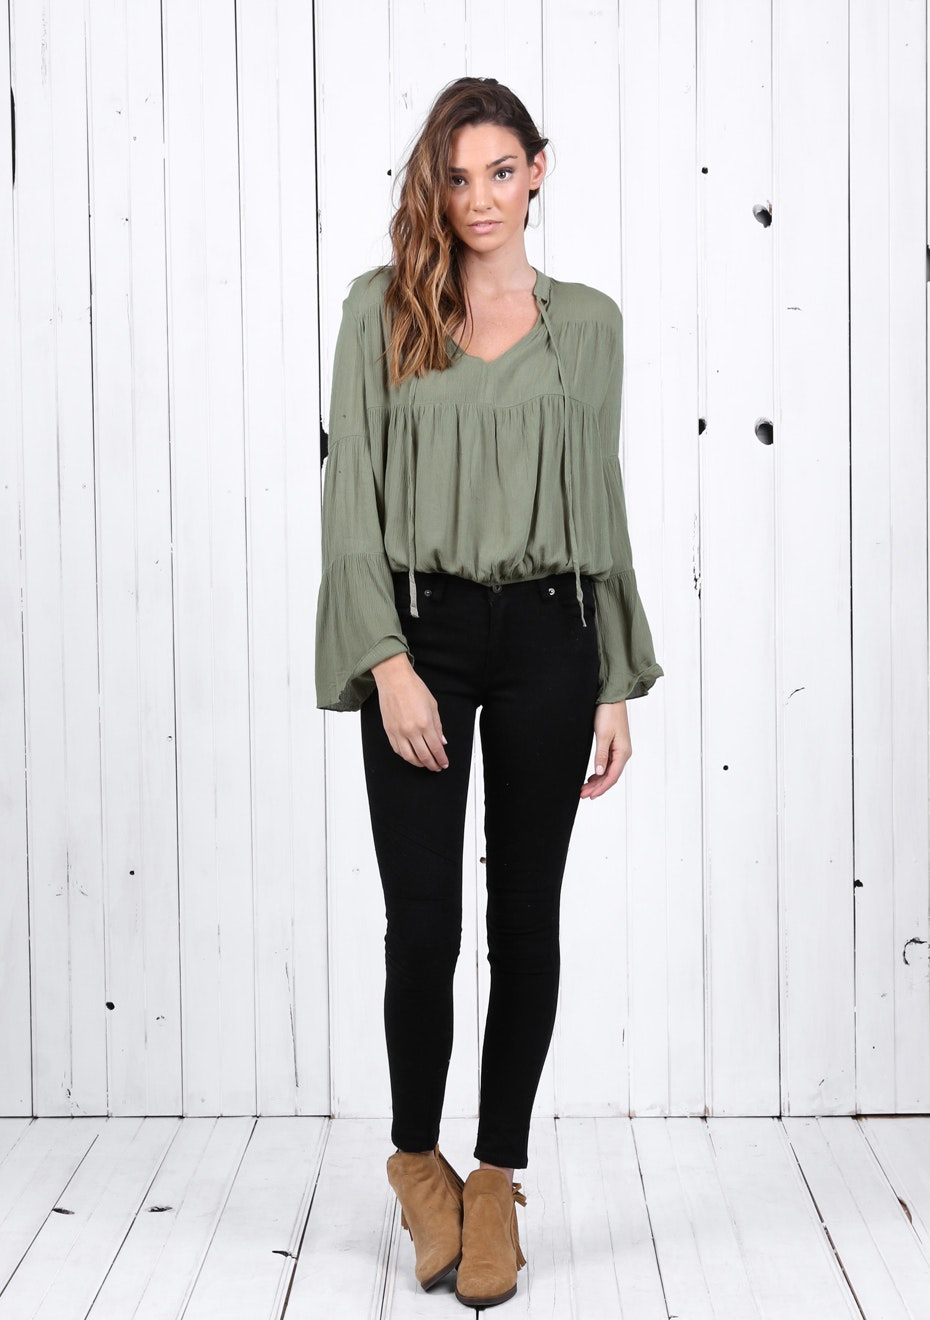 Madison - GODIVA BLOUSE - KHAKI